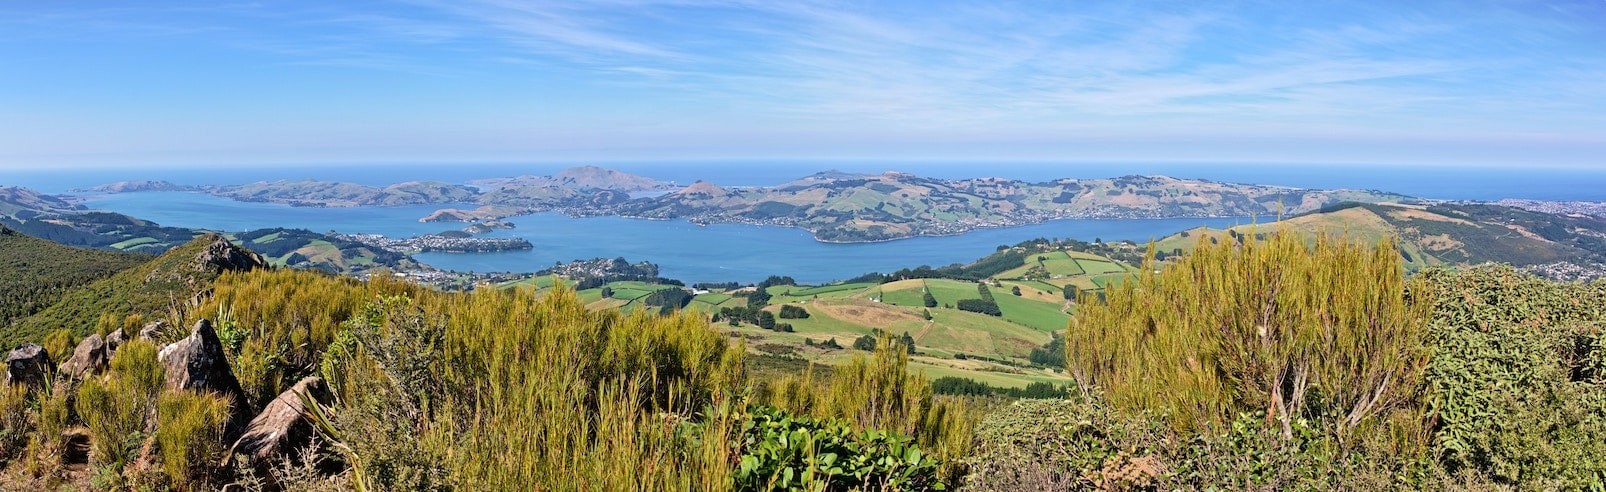 Coworking hubs, shared and serviced offices available in Dunedin